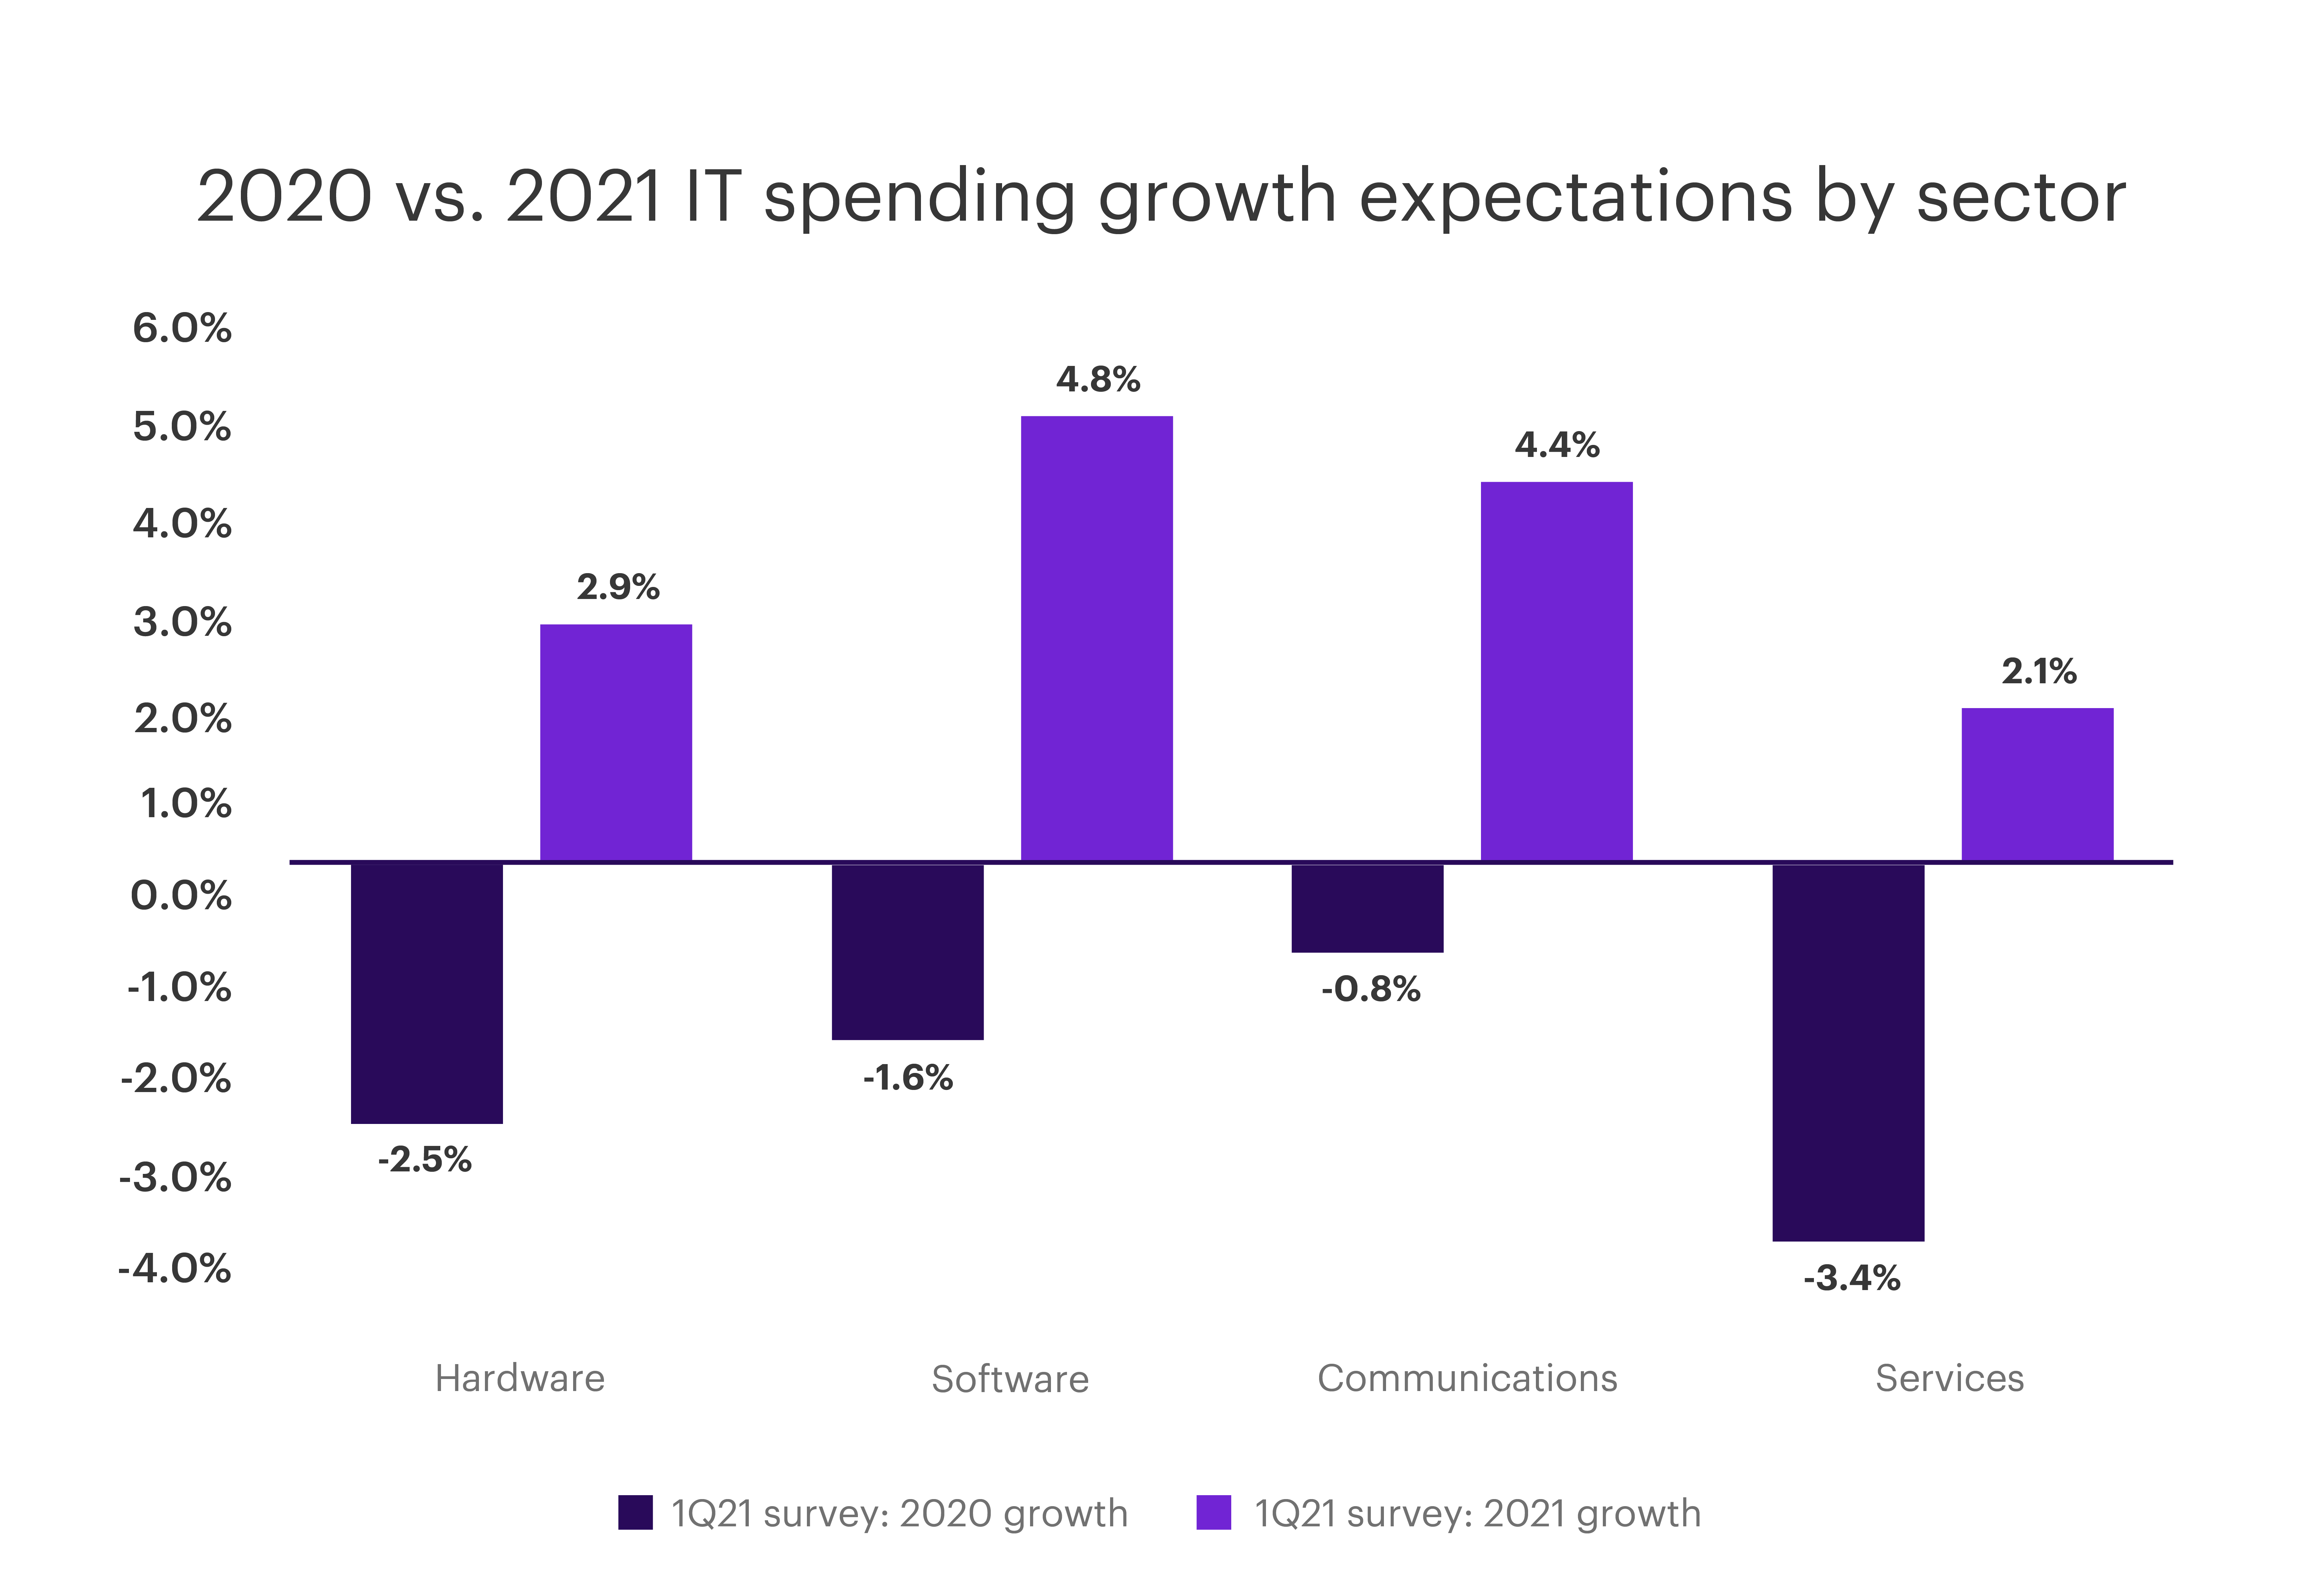 Chart - 2020 vs. 2021 IT spending growth expectations by sector.